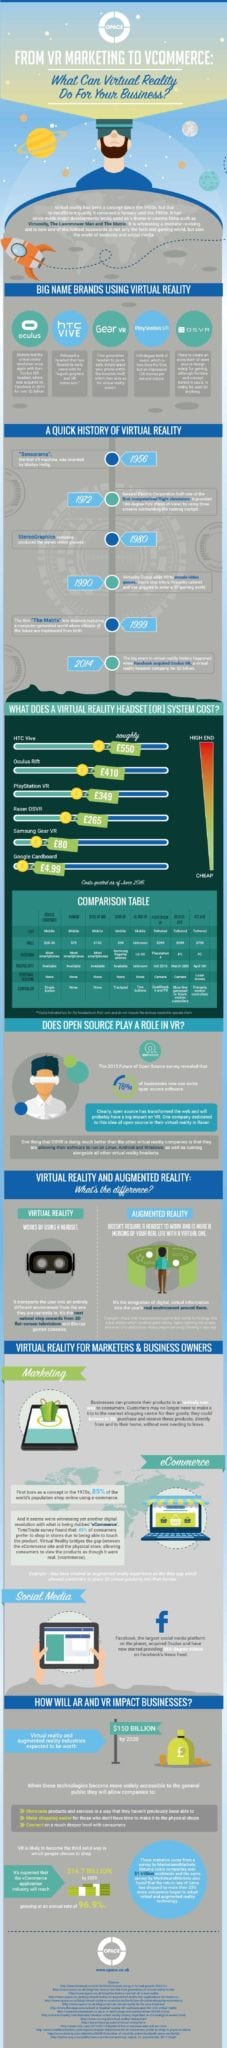 Virtual Reality (VR) for Business Infographic